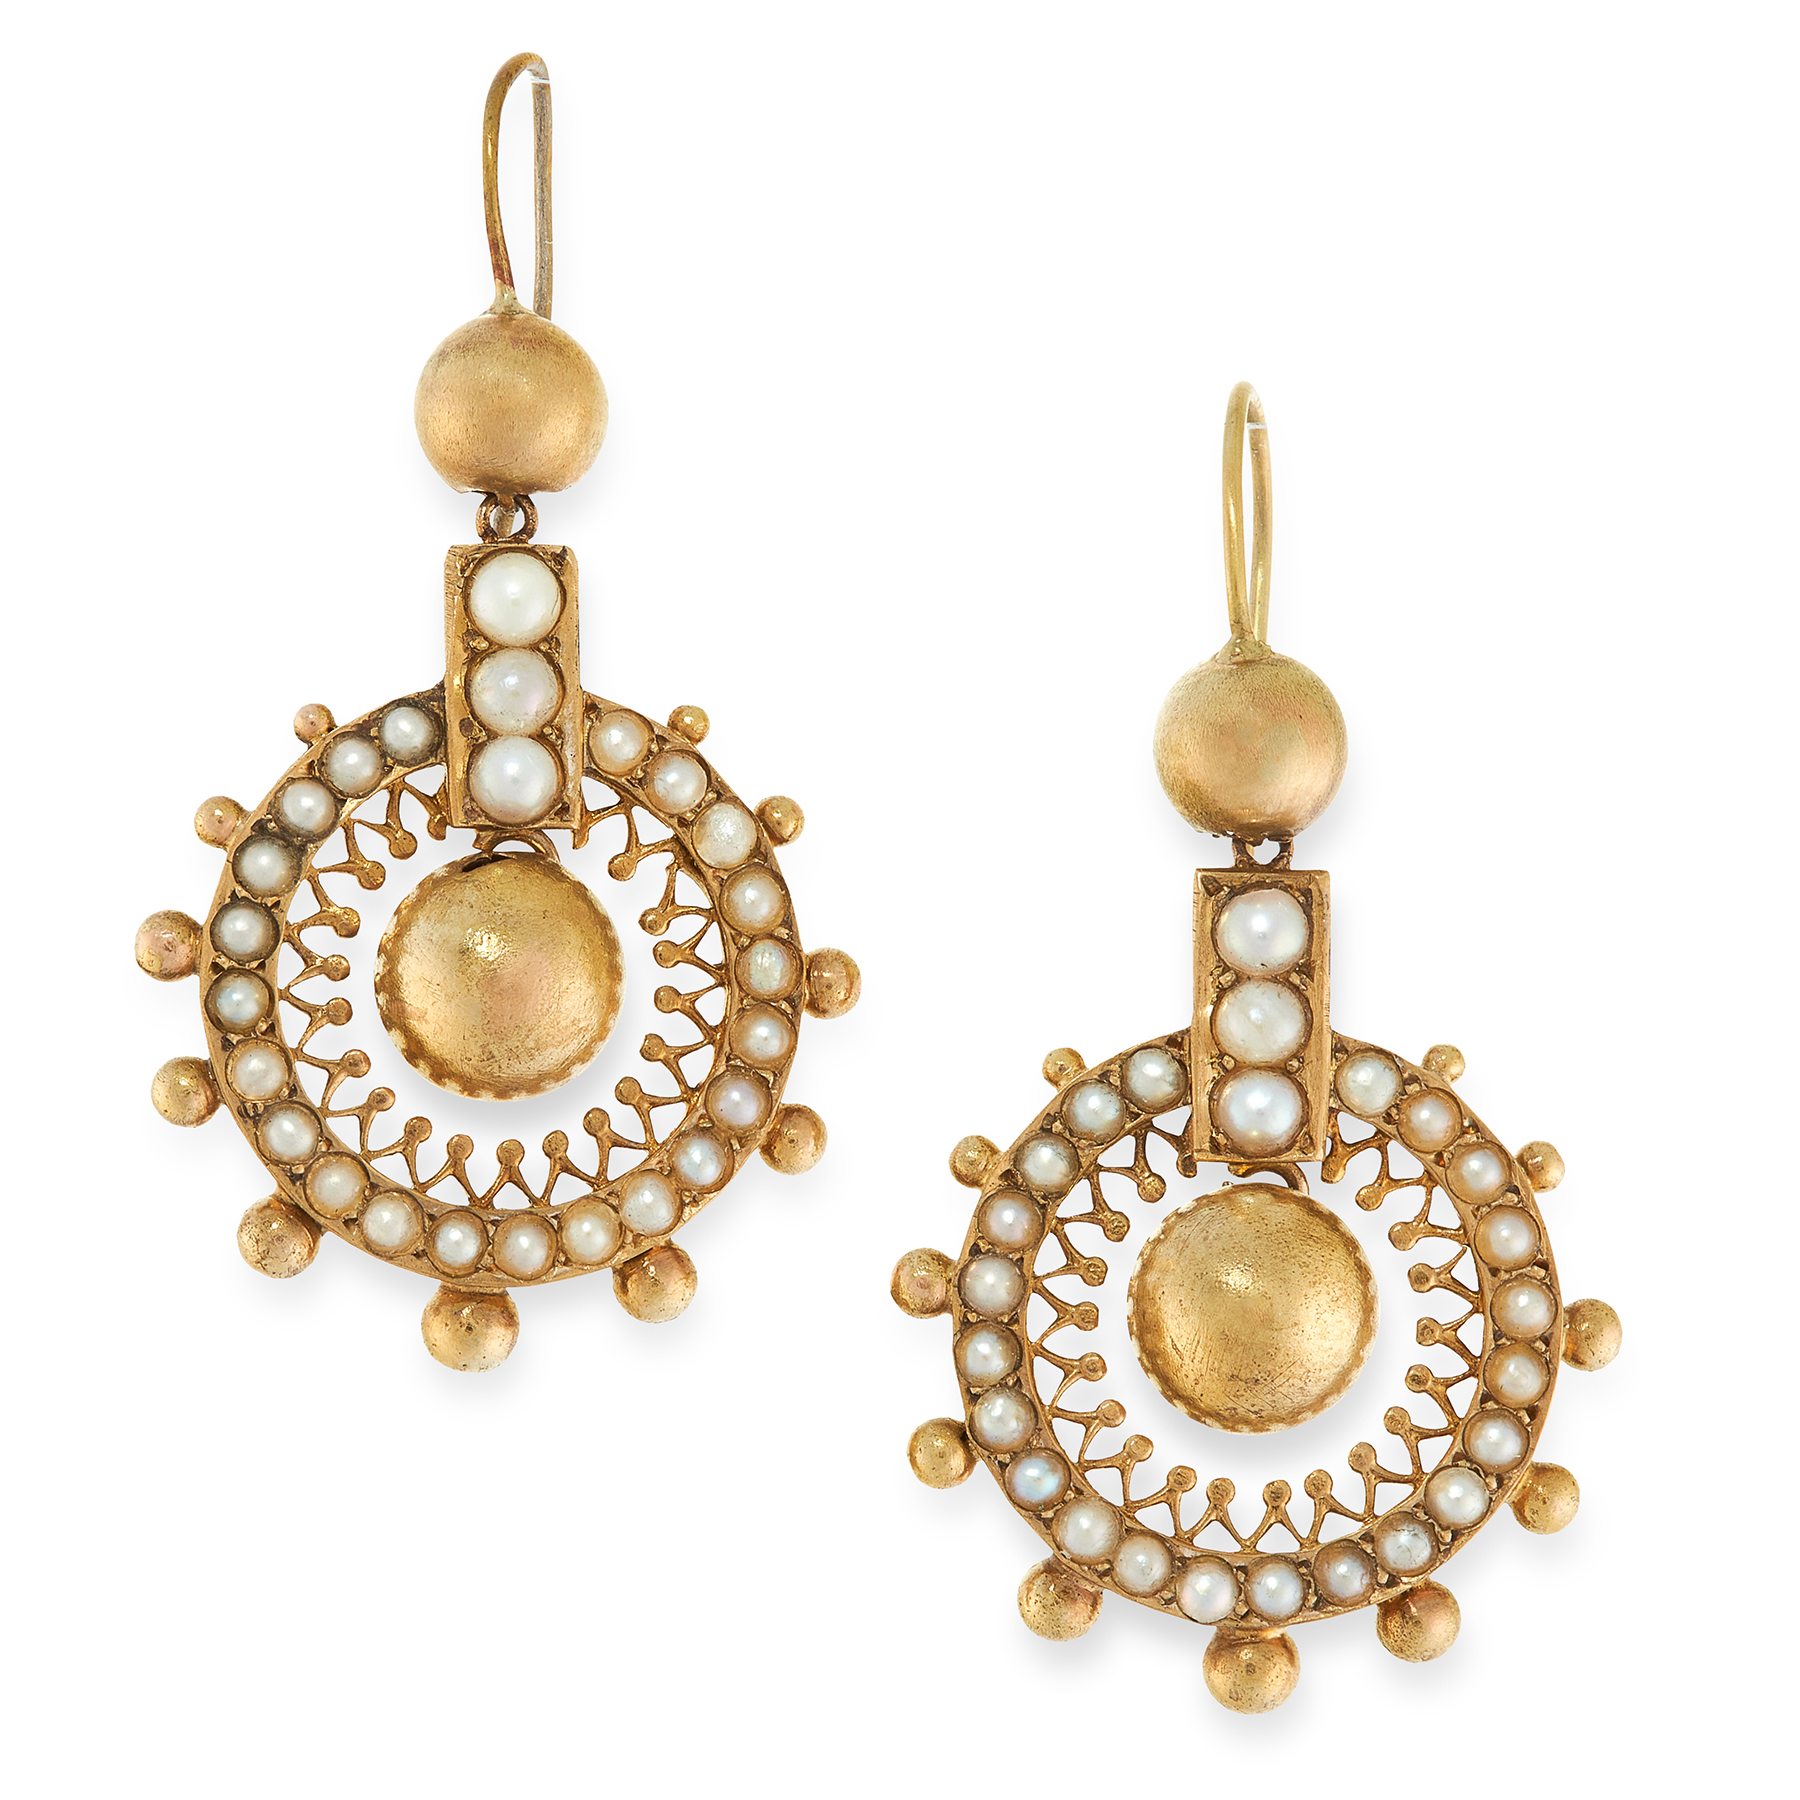 A PAIR OF ANTIQUE PEARL EARRINGS, 19TH CENTURY in yellow gold, in the Etruscan revival manner, the